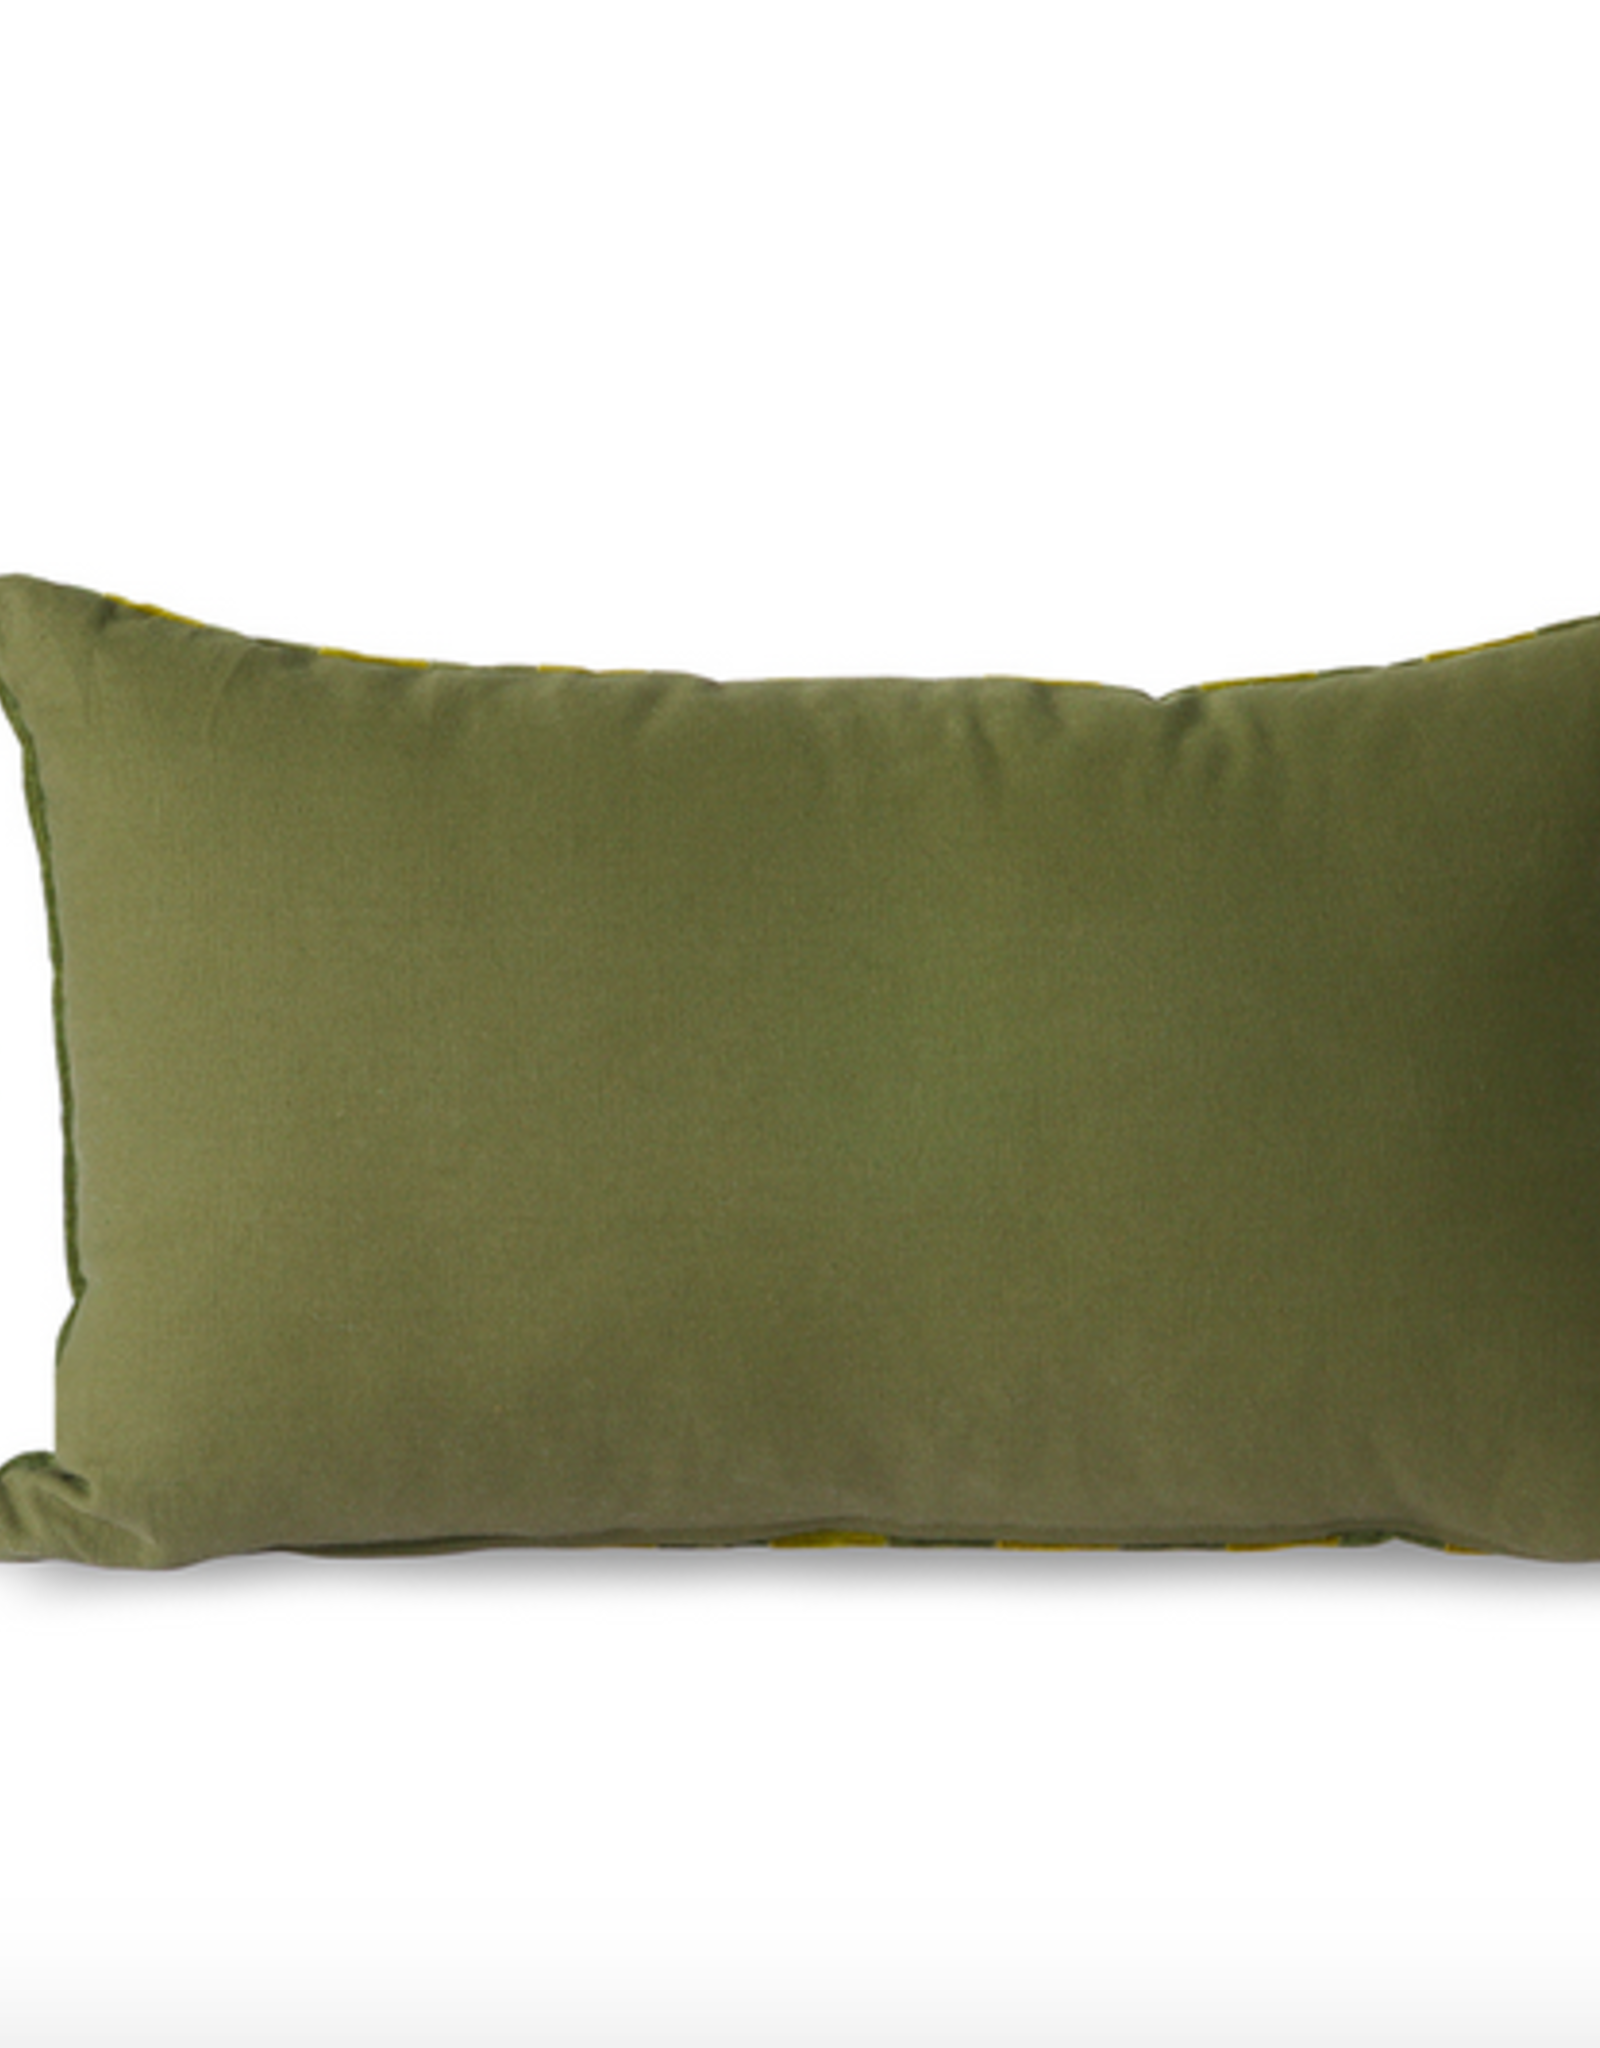 HK Living Hk Living striped velvet cushion green camo (30x50)